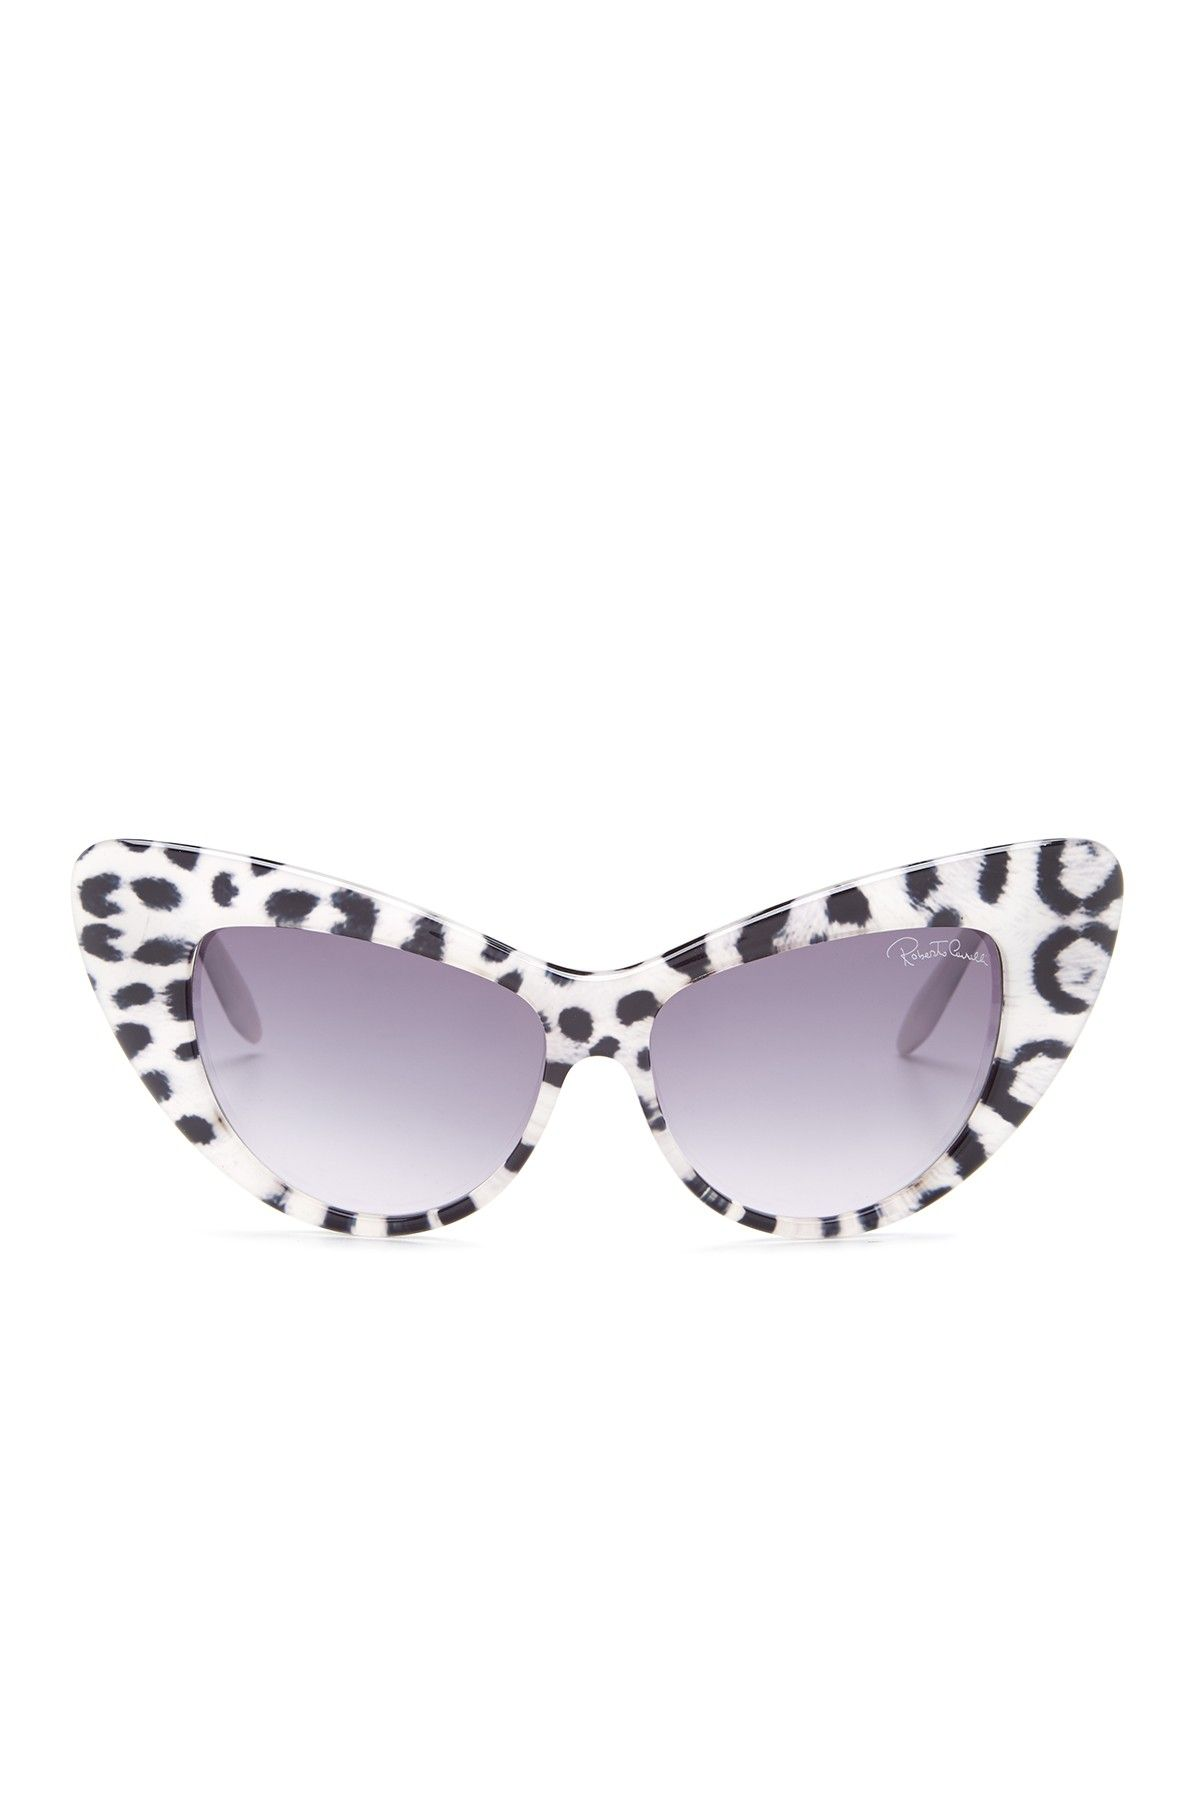 5919566d067 Women s Extreme Cat Eye Sunglasses by Roberto Cavalli on  nordstrom rack